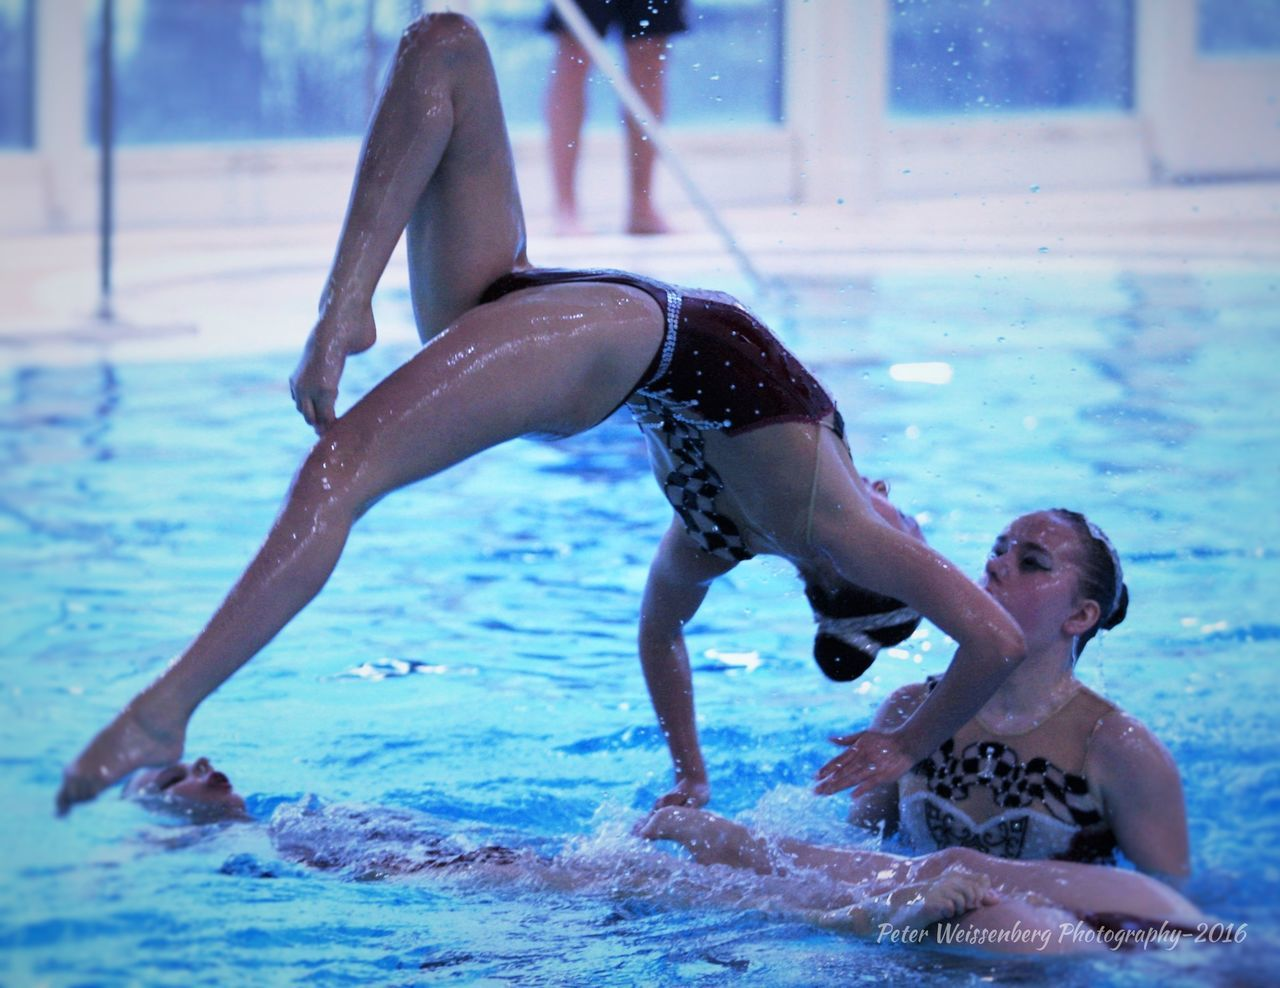 swimming pool, skill, real people, leisure activity, swimwear, water, two people, lifestyles, exercising, swimming, bikini, vitality, handstand, day, outdoors, wet, upside down, young women, strength, full length, flexibility, healthy lifestyle, sport, young adult, athlete, adult, people